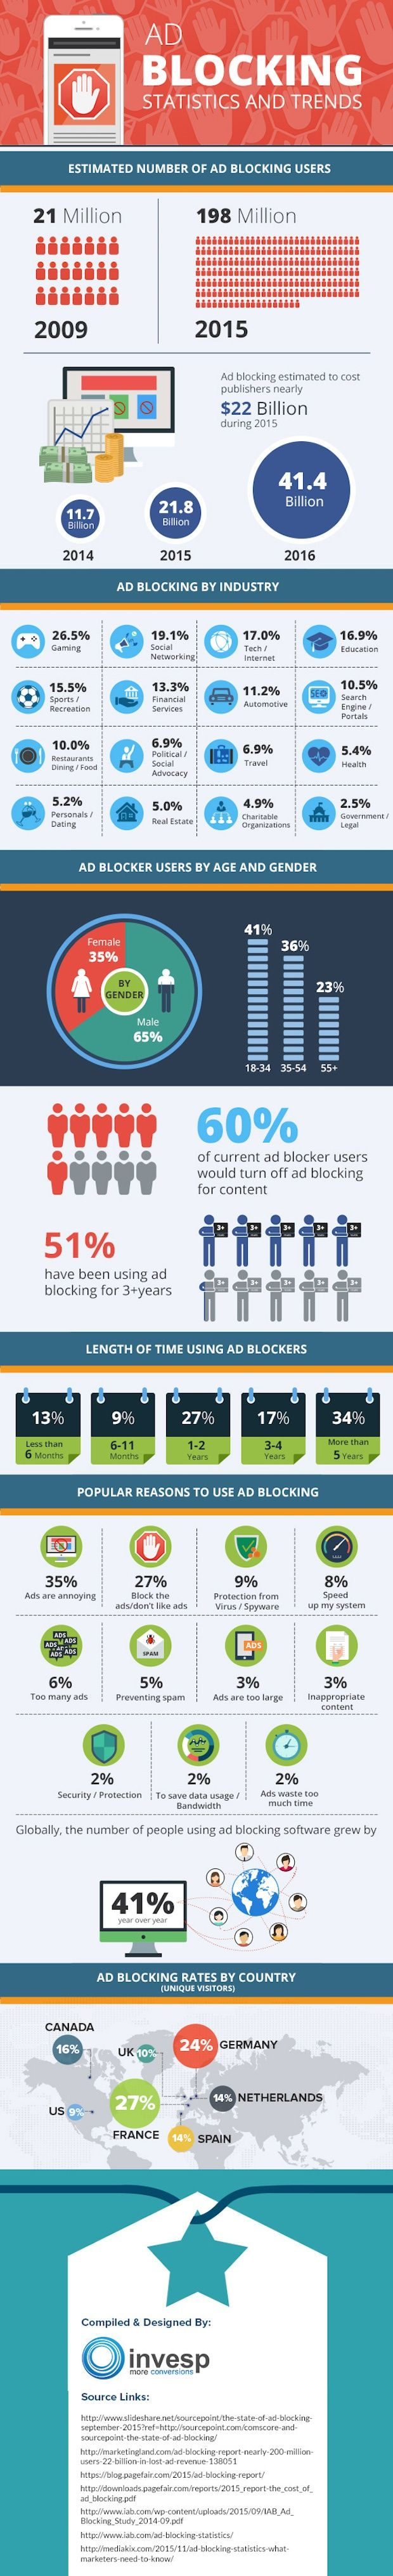 February 22, 2016 // 7:00 AM Who Are the 198 Million Ad Block Users? [Infographic]  Written by Matthew Kane | @Mattk970